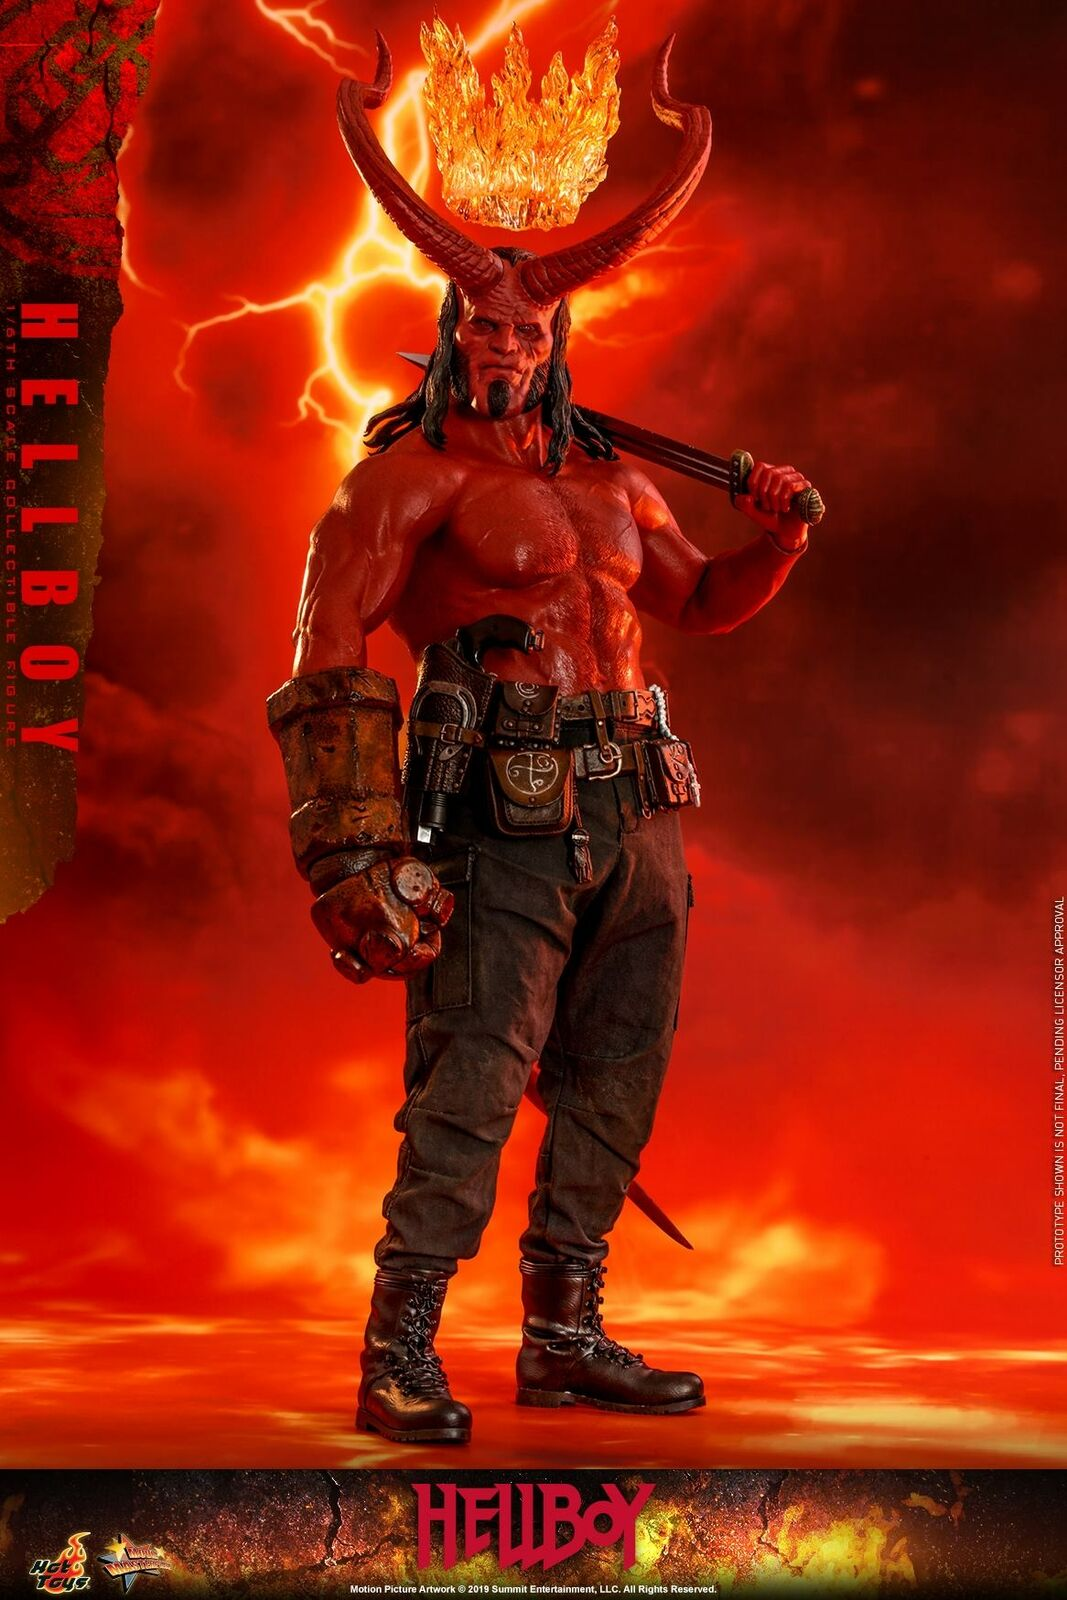 Hot Toys Hellboy 1 6th scale Hellboy Collectible Collectible Collectible Figure MMS527 44cd54